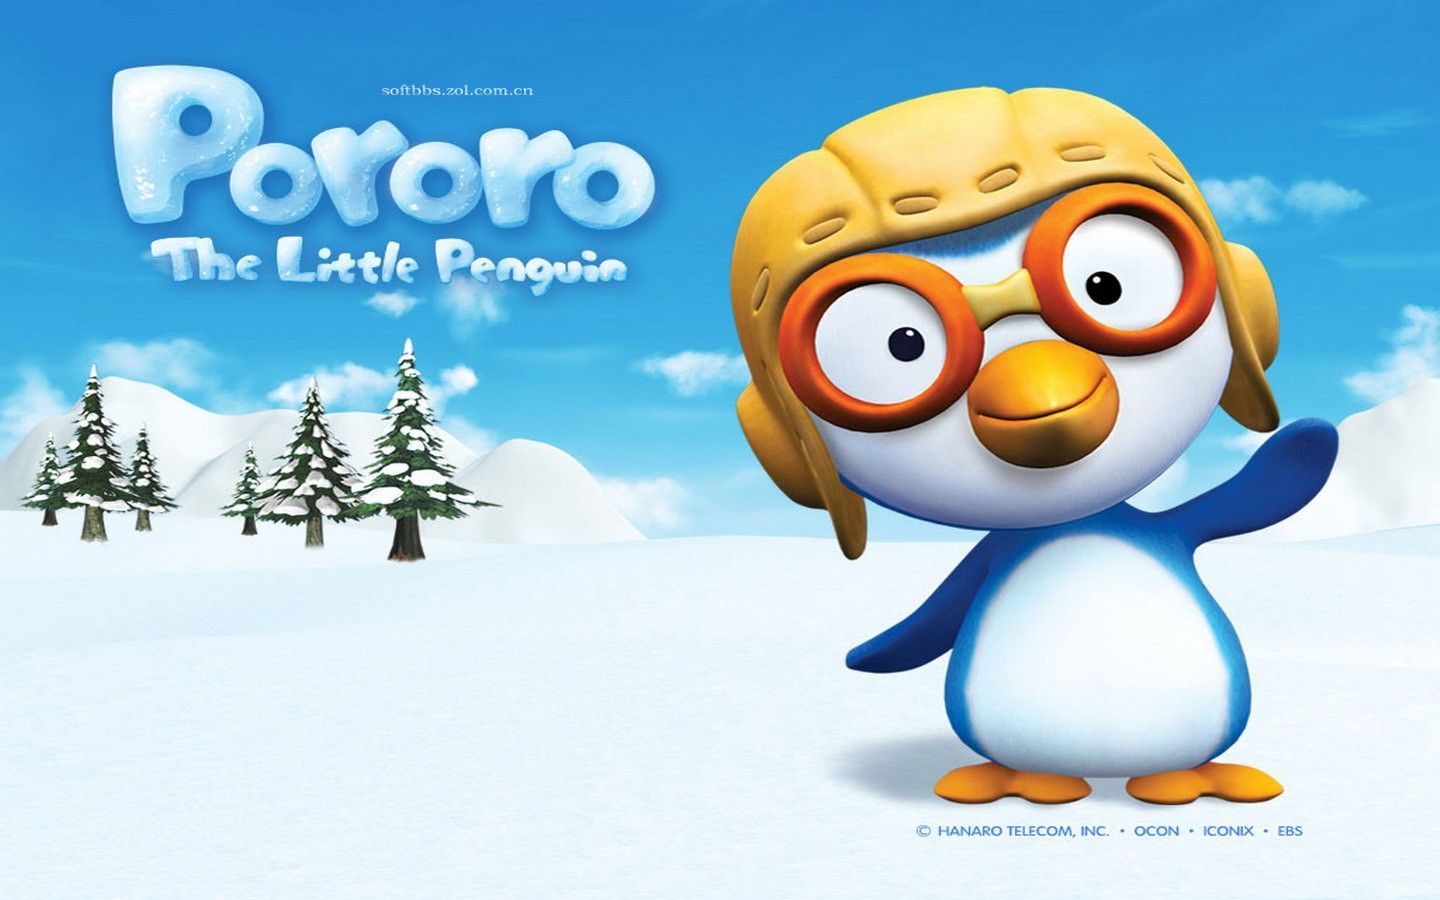 Cartoon pororo wallpaper image wallpaper collections pororo cartoon wallpapers 4 1440x900 wallpaper download image source from this thecheapjerseys